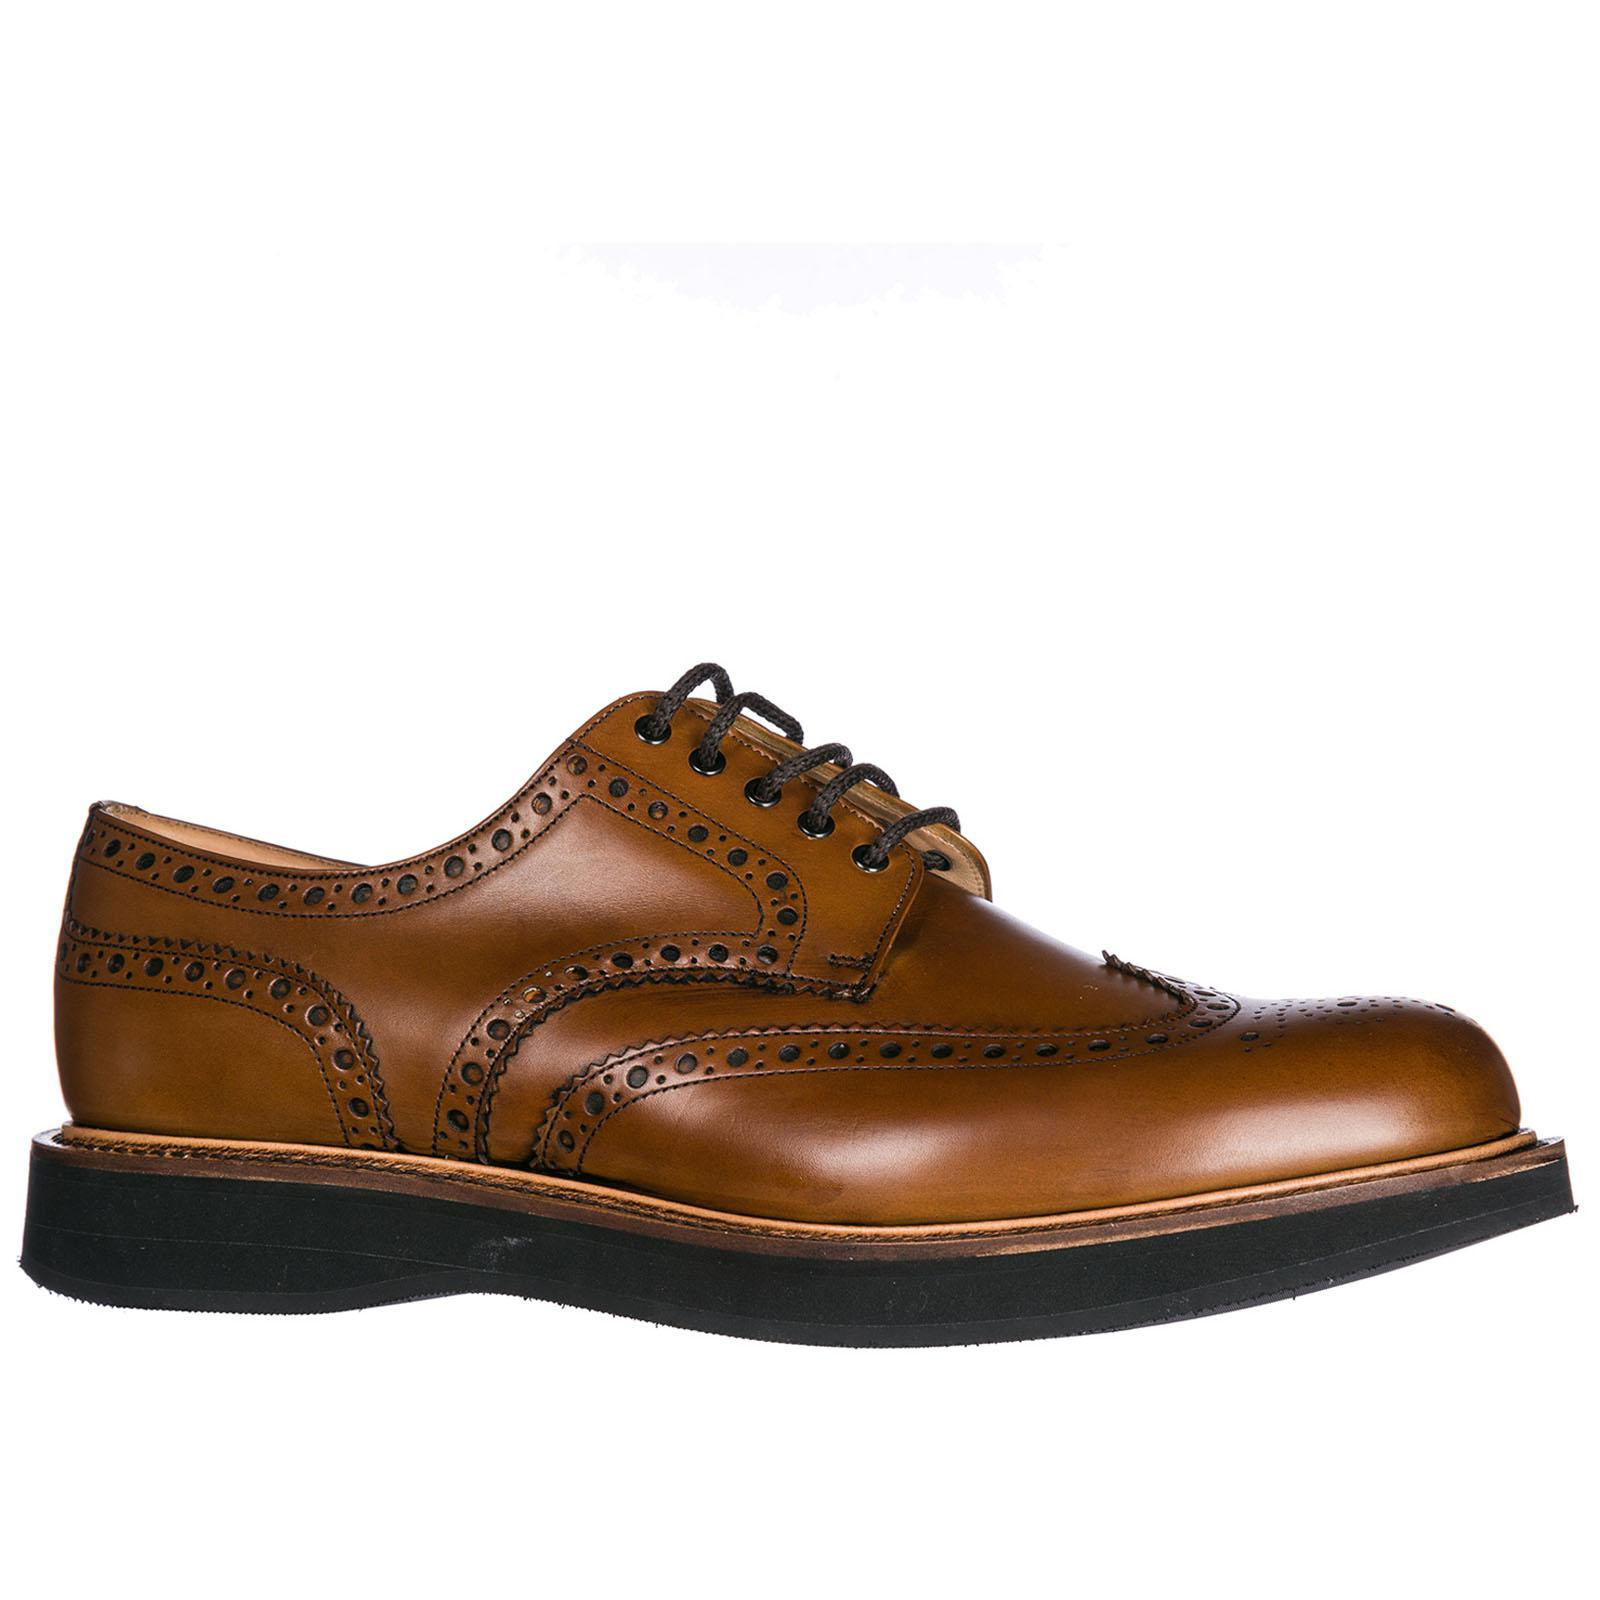 f1dd0e561d68 churchs-Chestnut-Classic-Leather-Lace-Up-Laced-Formal-Shoes-Tewin-Derby.jpeg